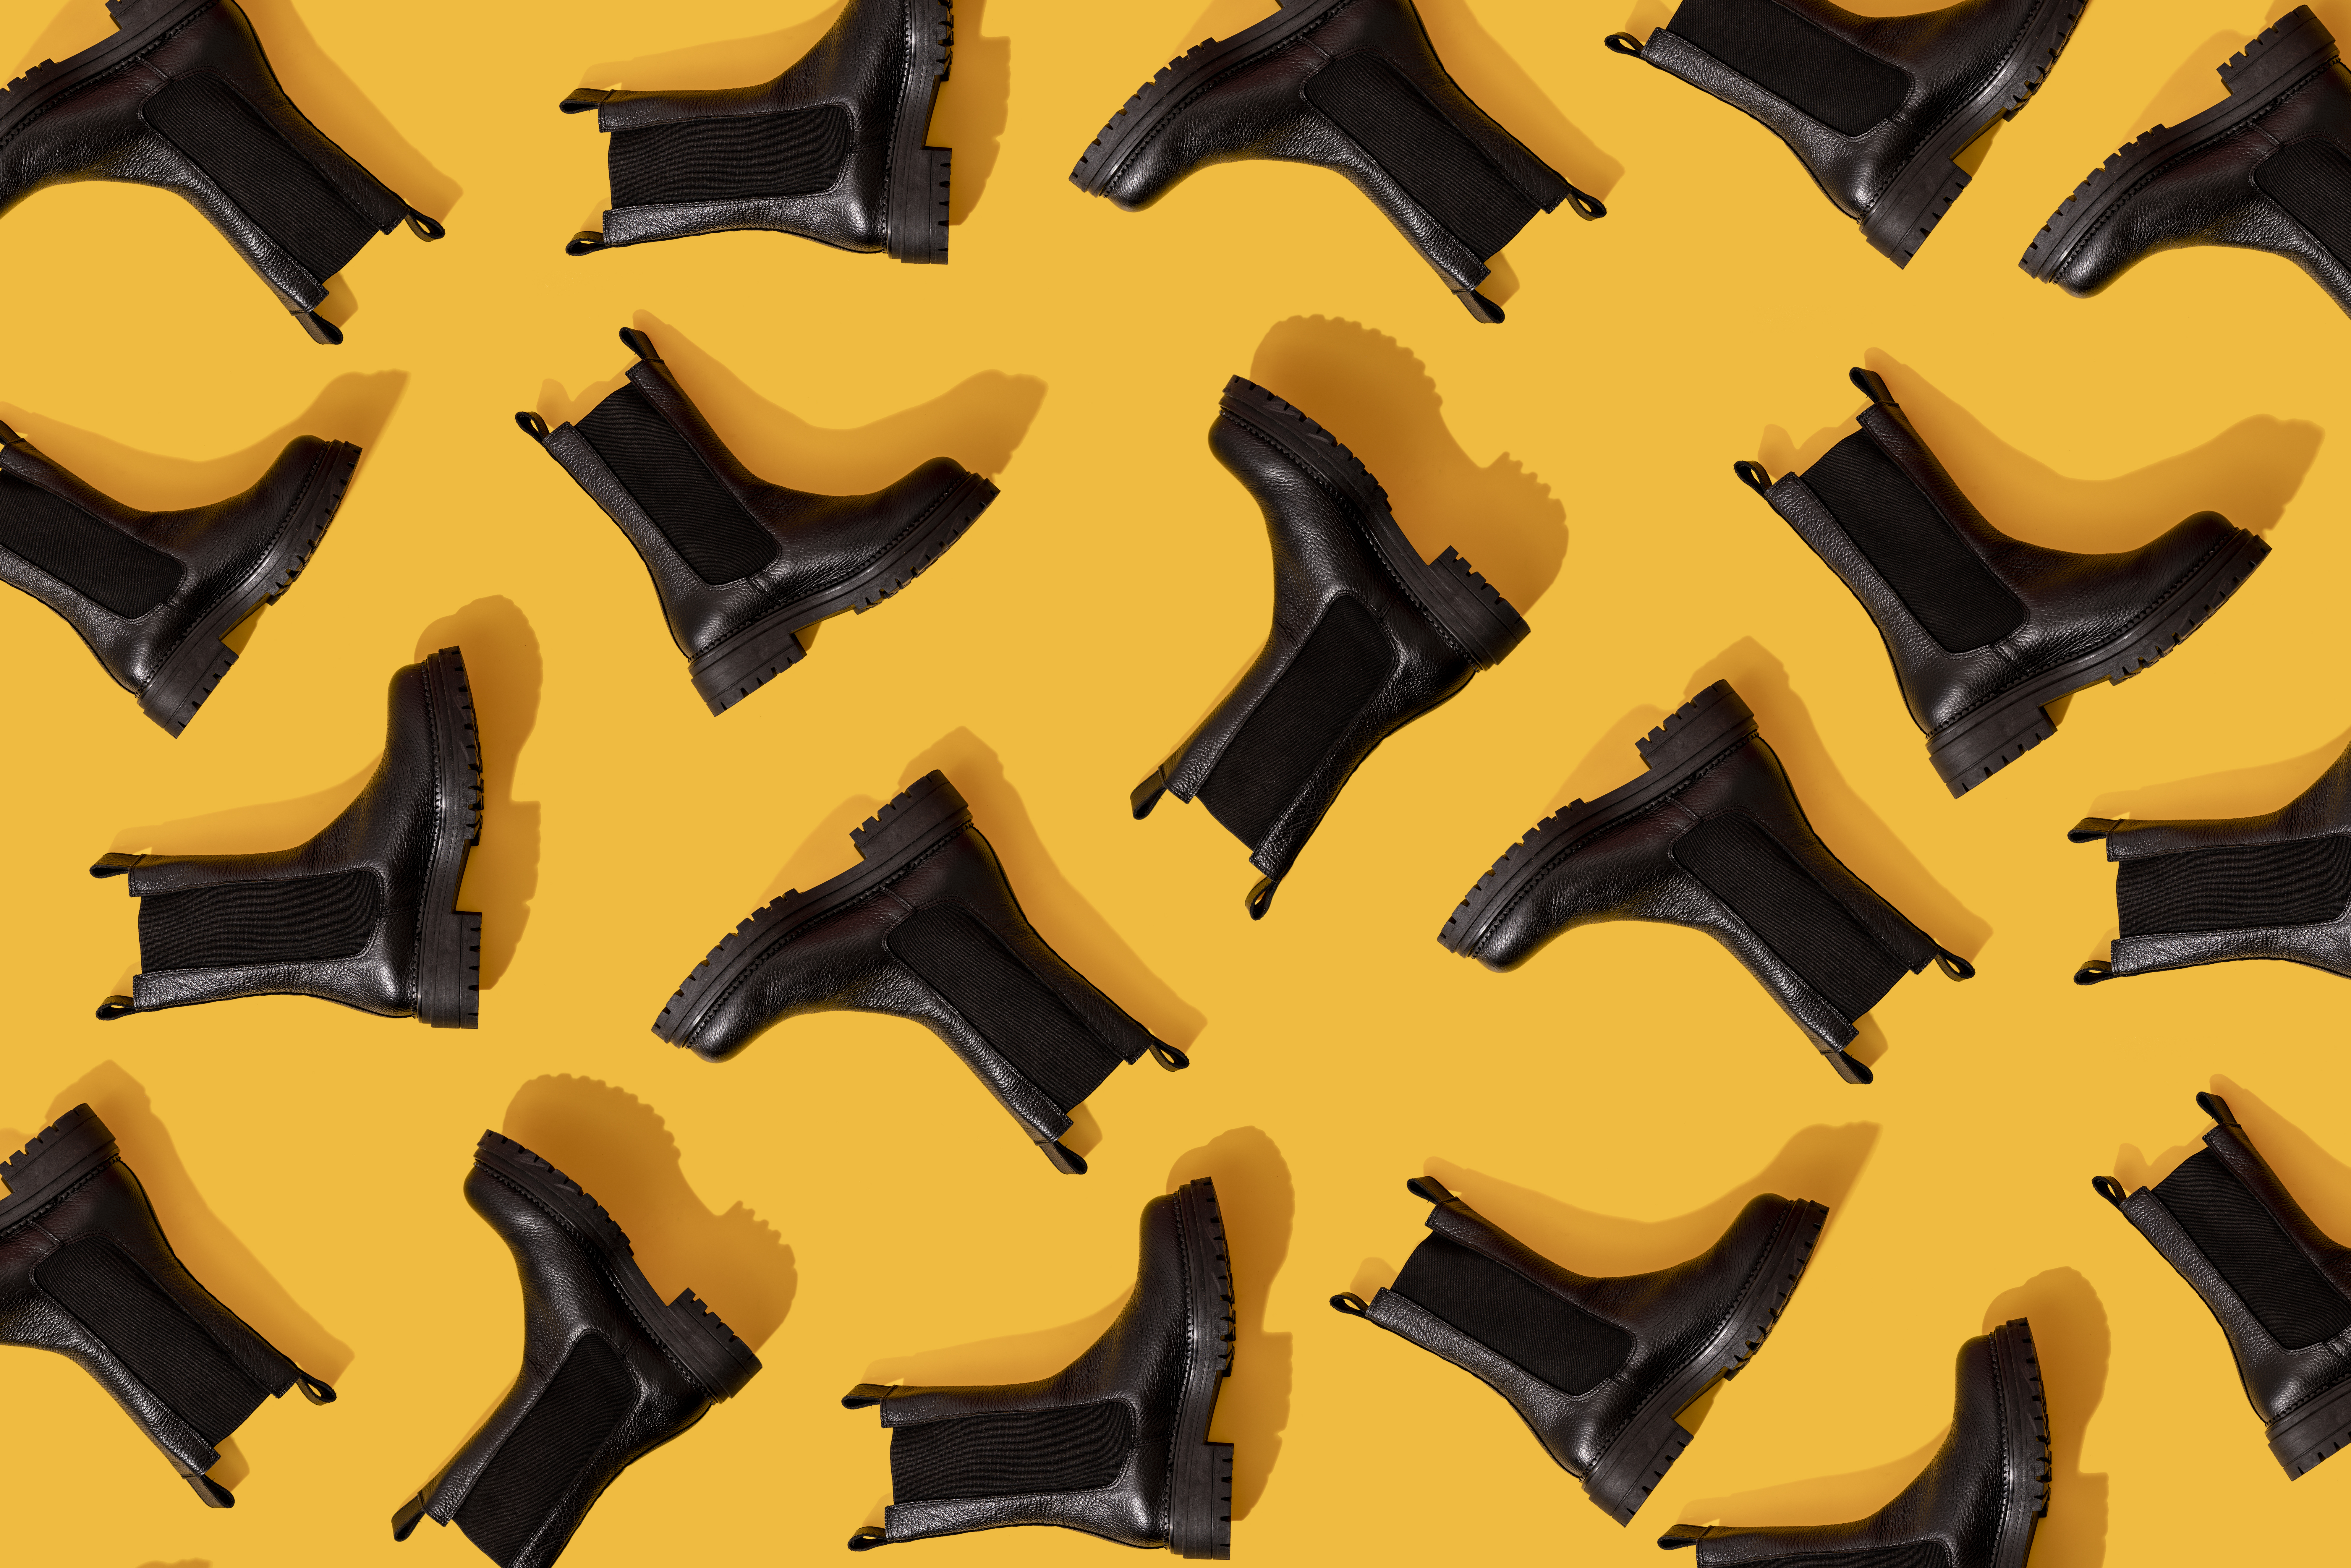 Black ankle boots arranged on a yellow background.